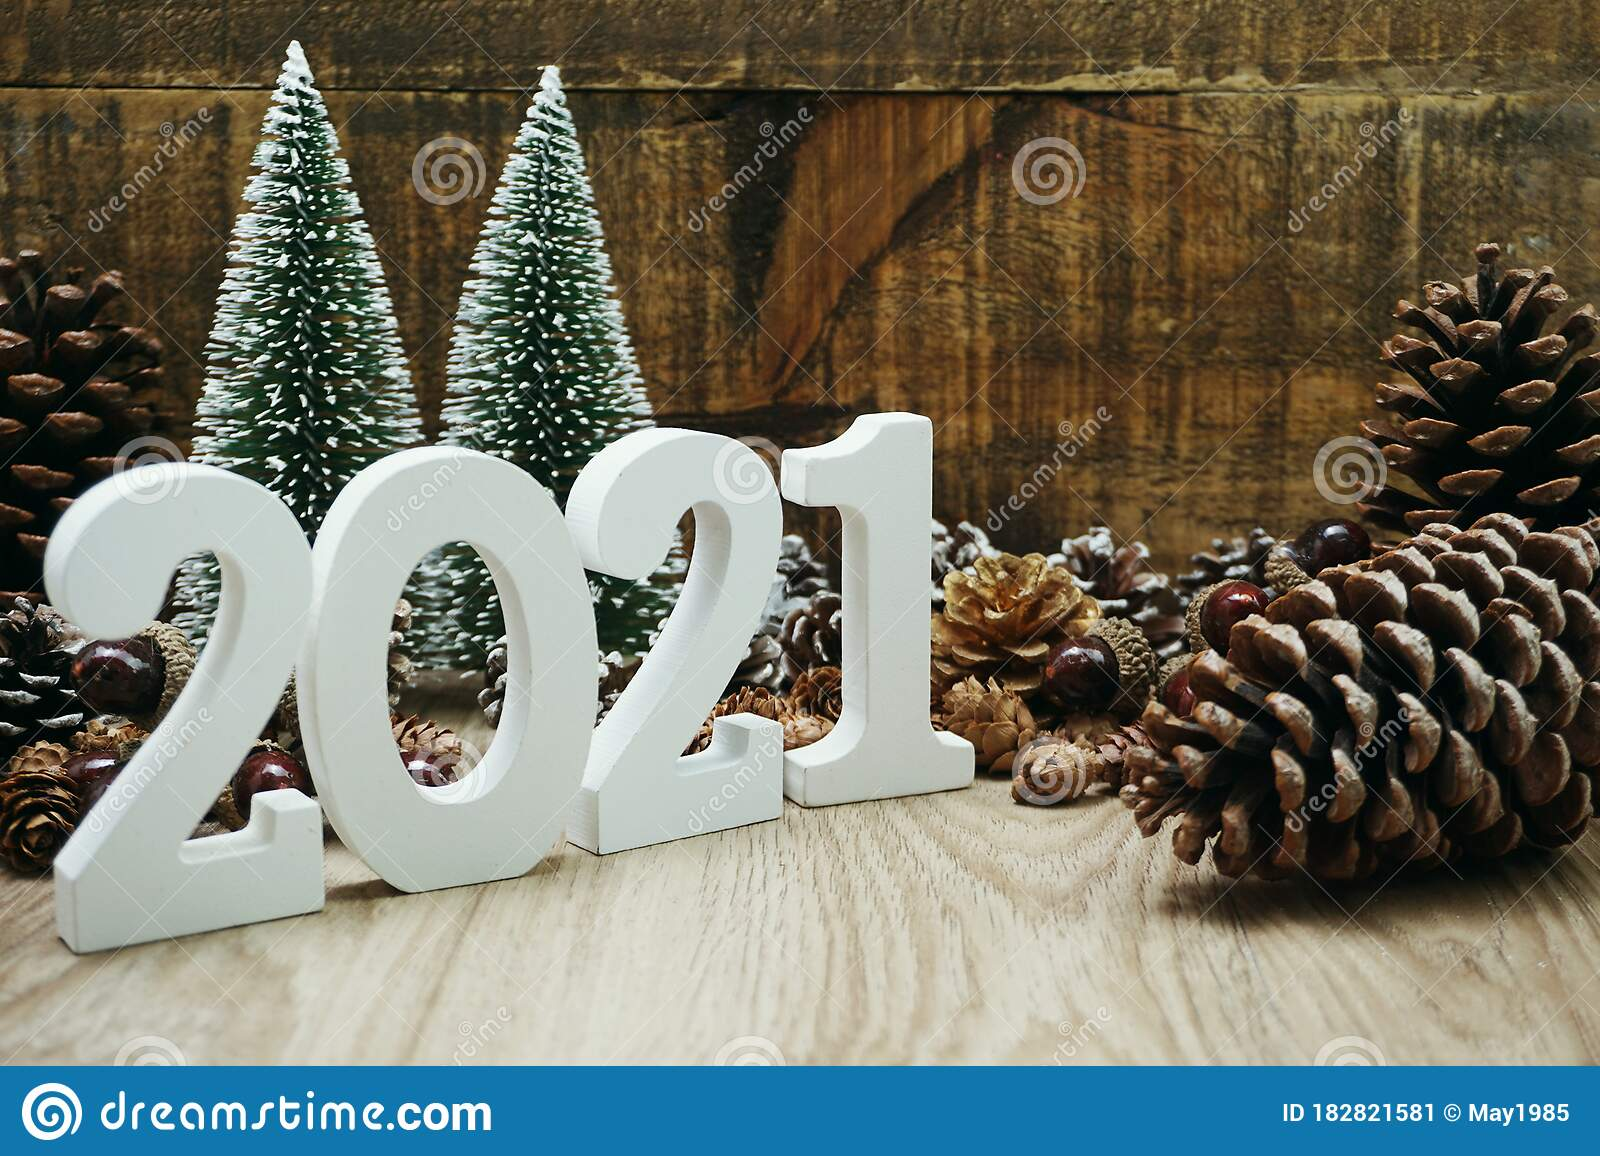 2021 Happy New Year Festive Background With Christmas Tree ...